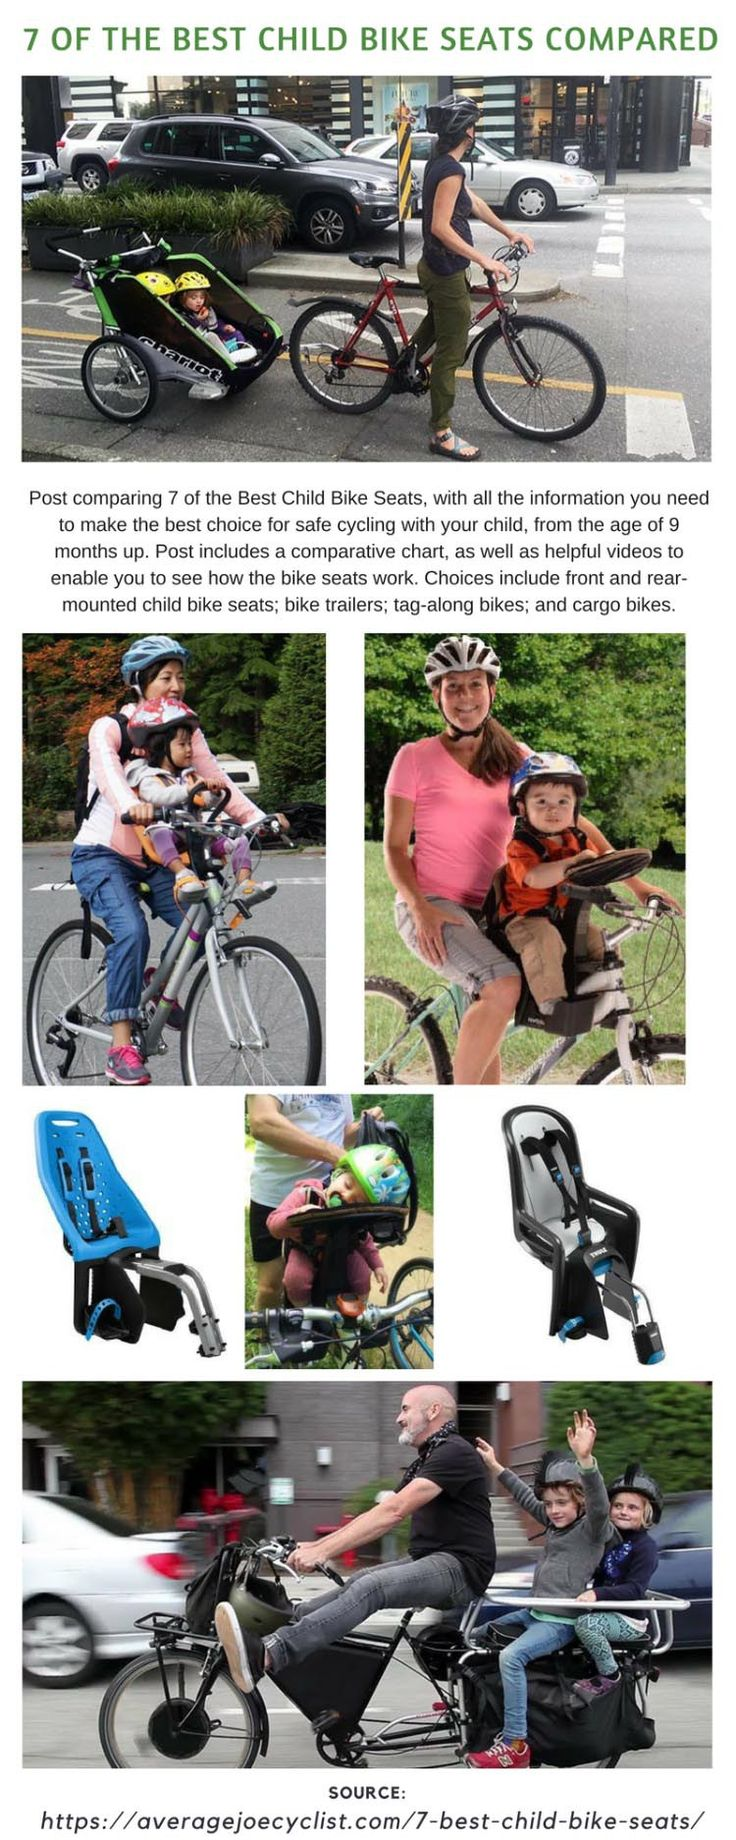 7 of the best child bike seats compared